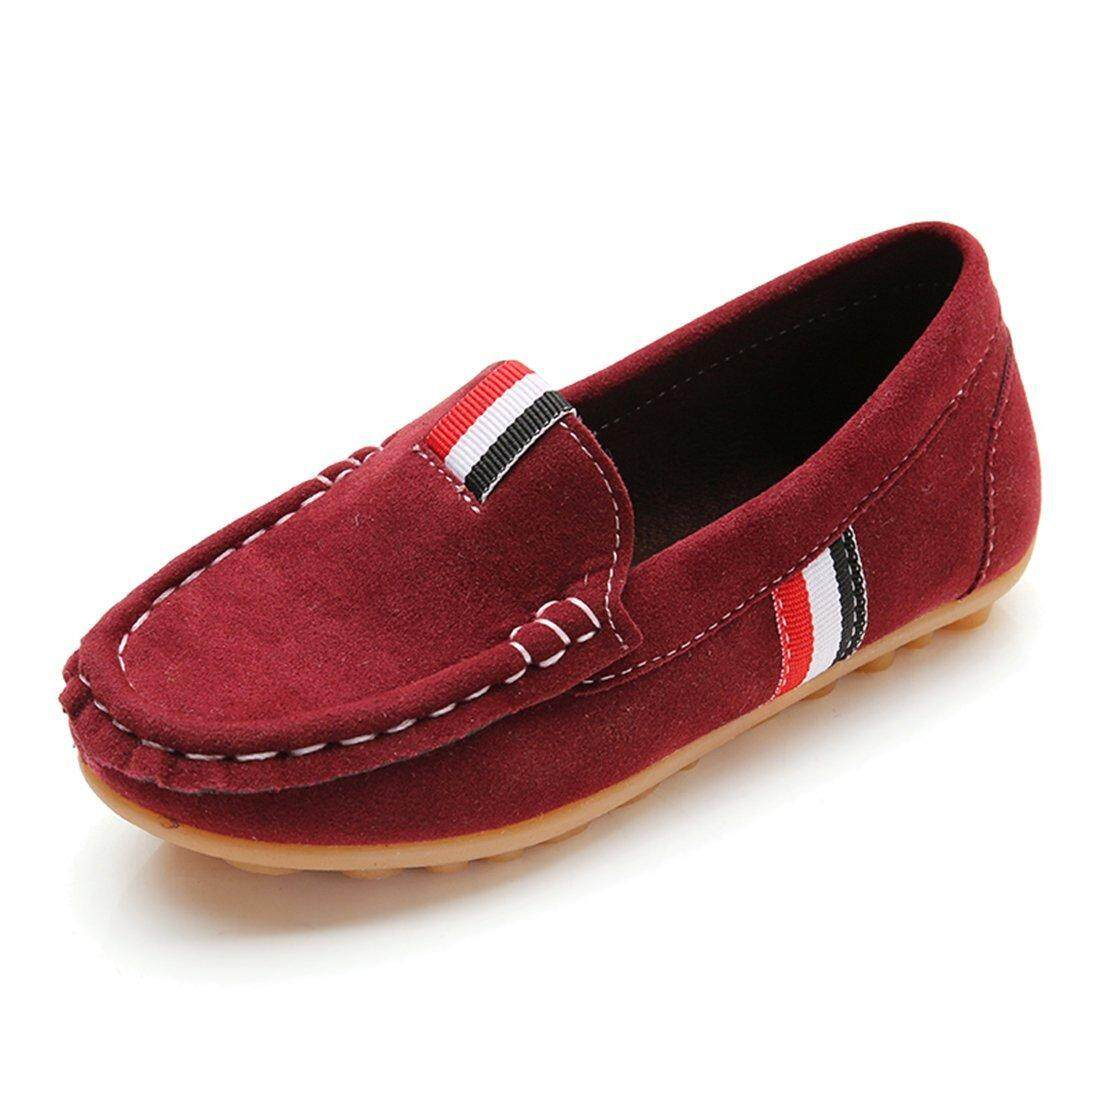 Girls' Boys' Kids Cute Suede Leather Slip-On Loafers Flats Casual Shoes - intl